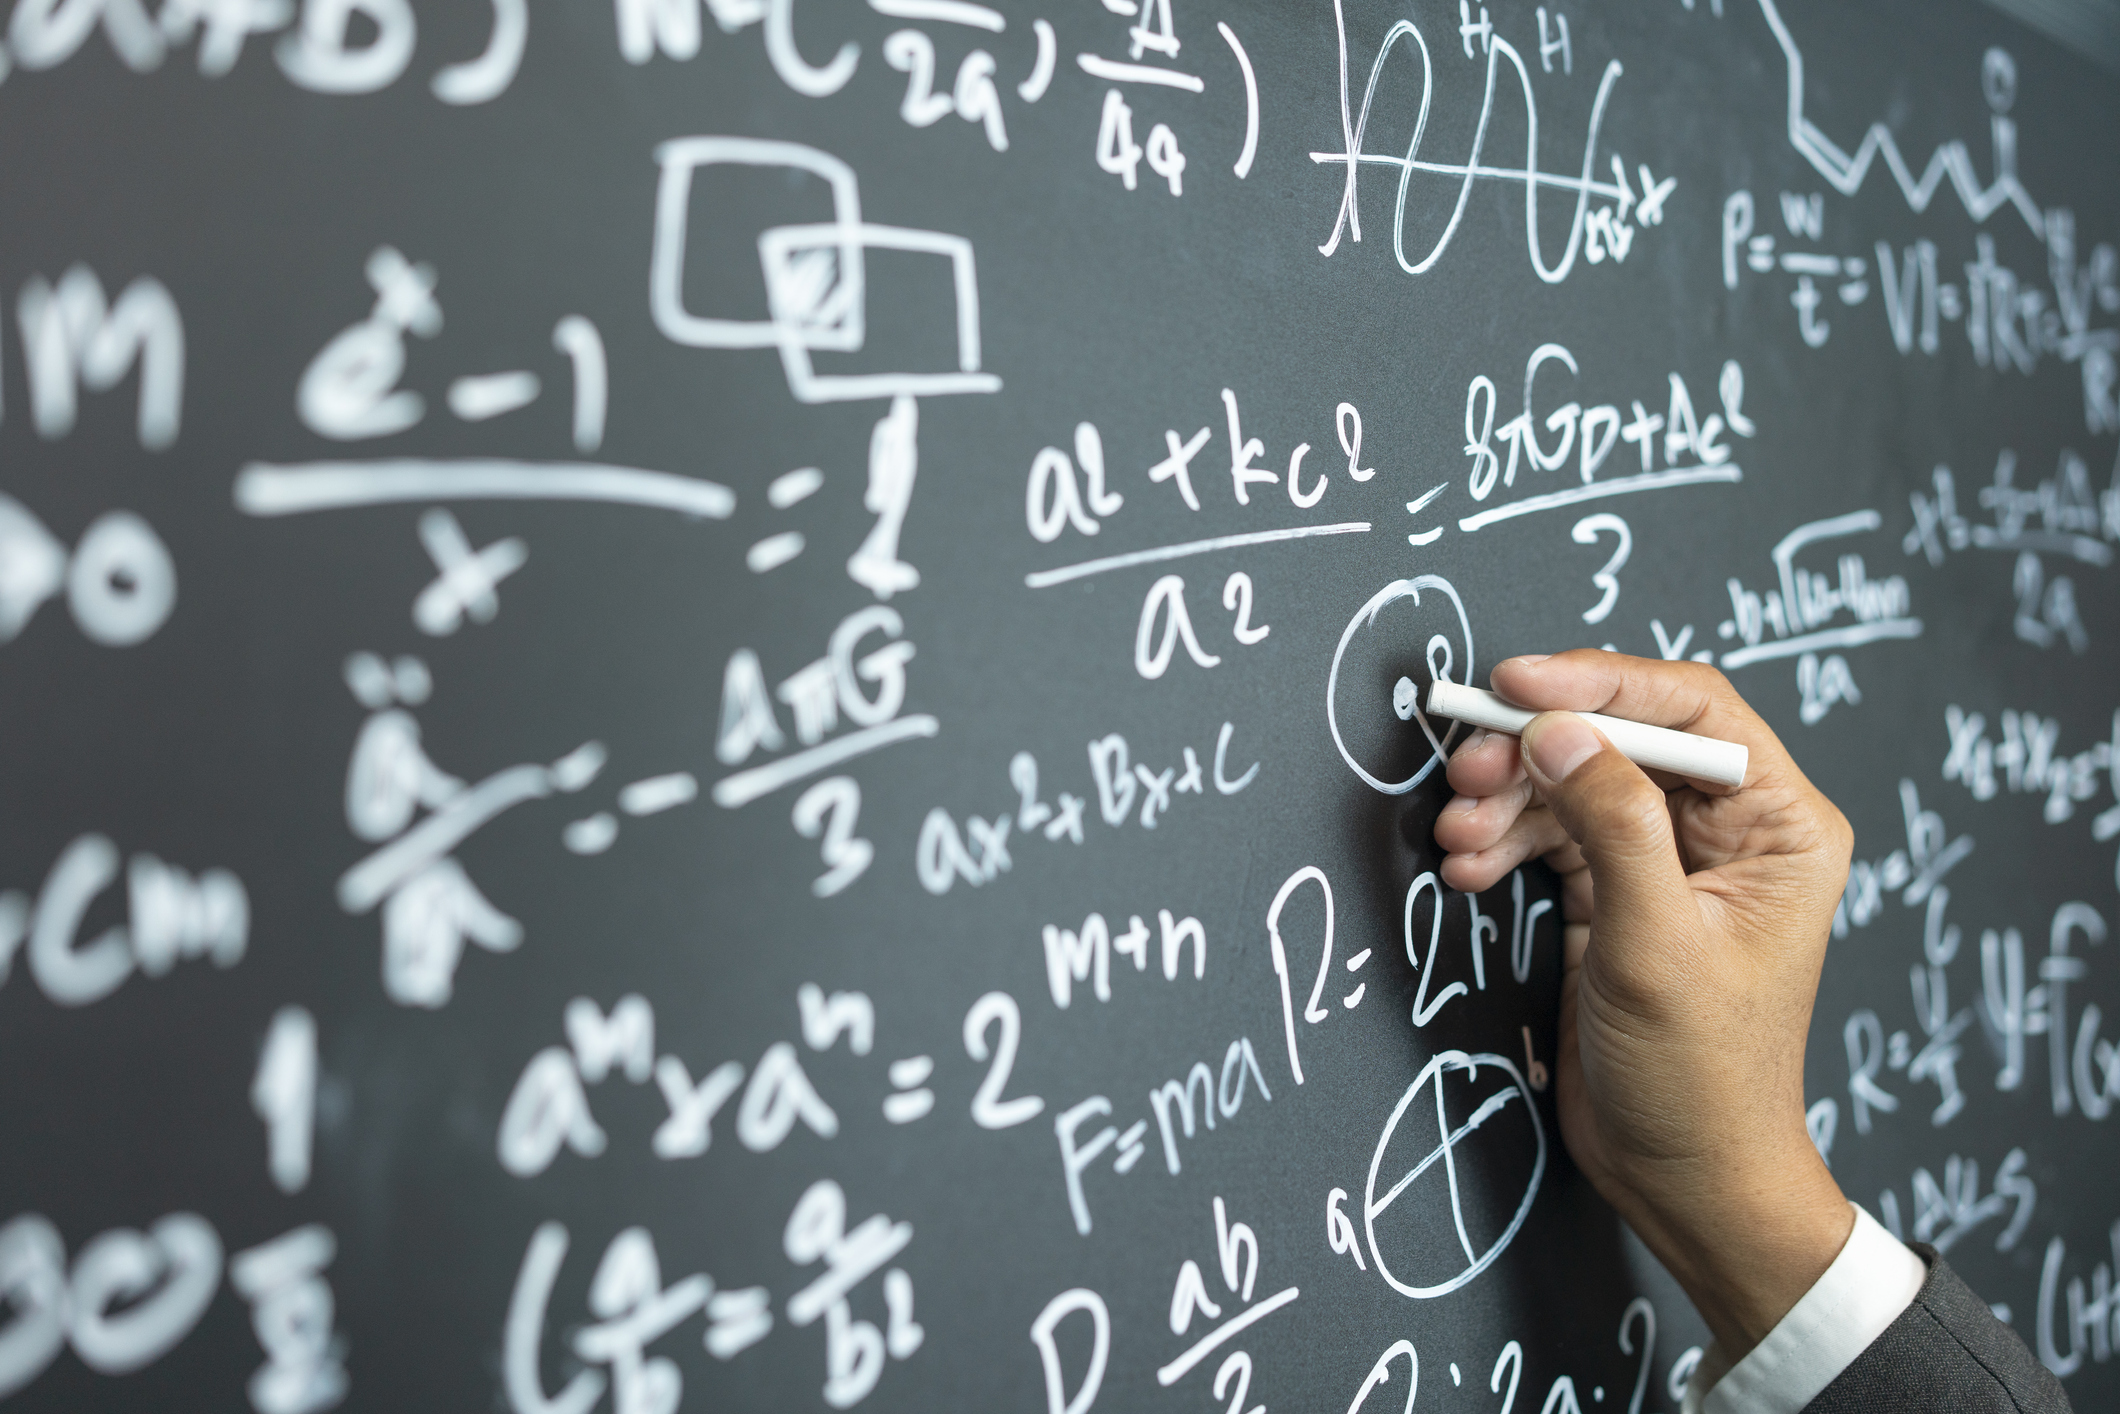 Declining maths skills in young Aussies, Adam Spencer to the rescue